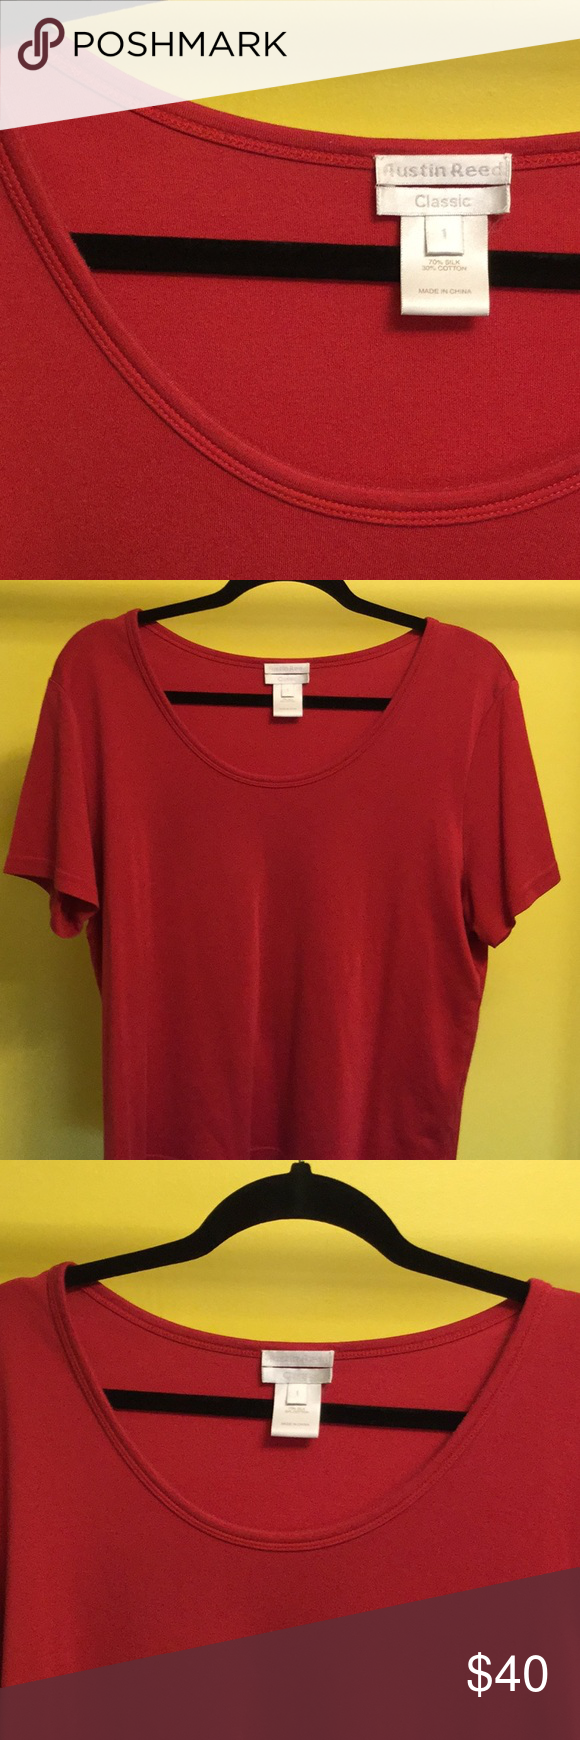 Austin Reed Xxl Red Classic Short Sleeve Silk Top Austin Reed Size 1 Xxl Deep Red Scoop Neck Short Sleeve Silk Classic Clothes Design Tops Tees Classic Tee